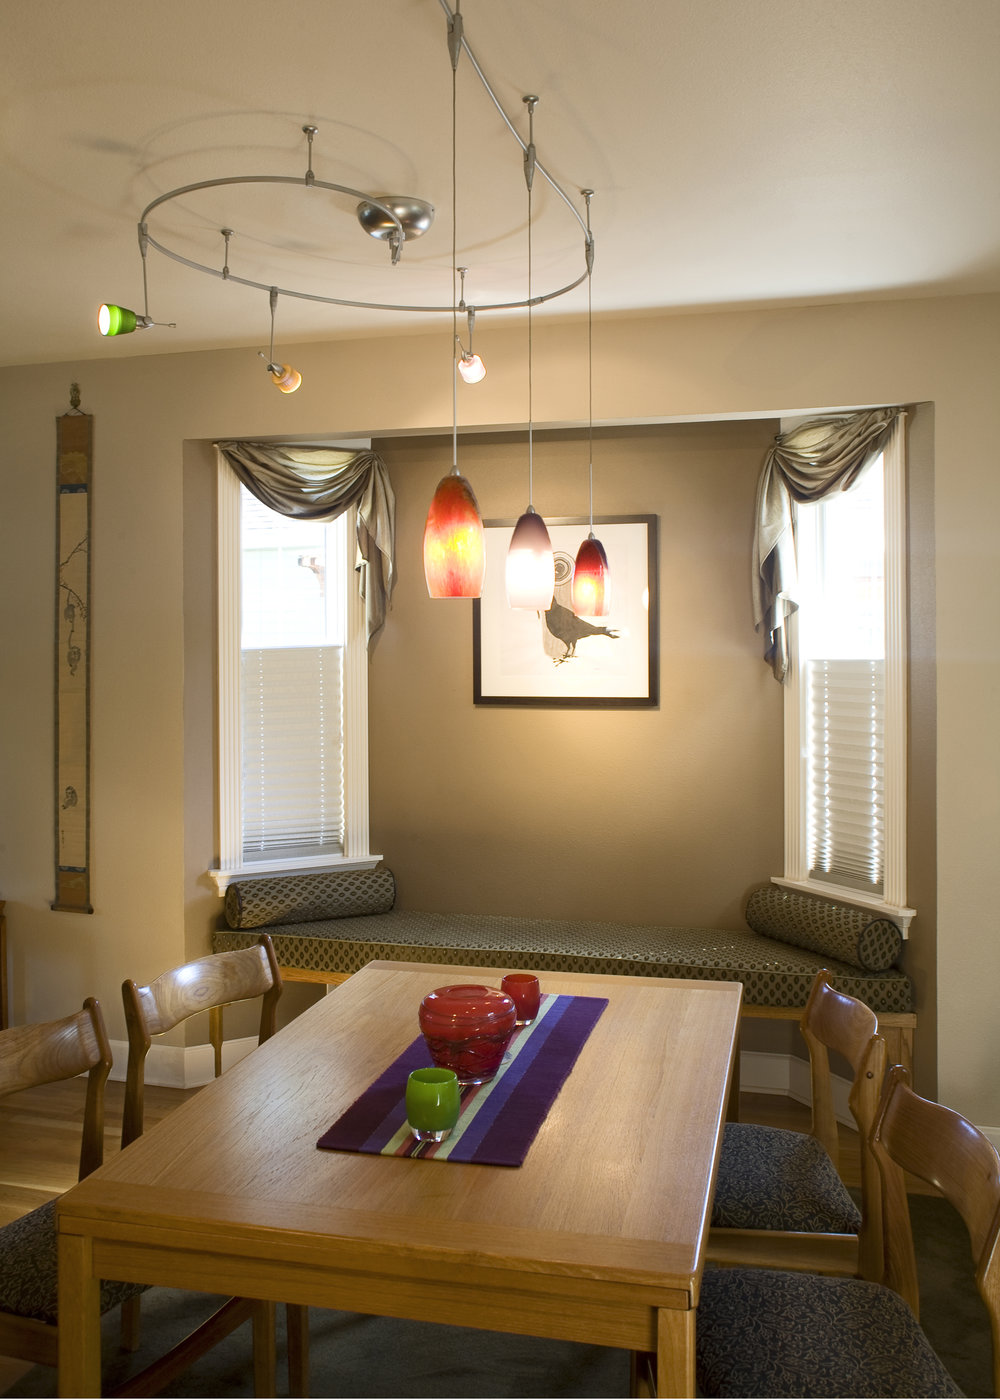 dinner_table_crop.jpg